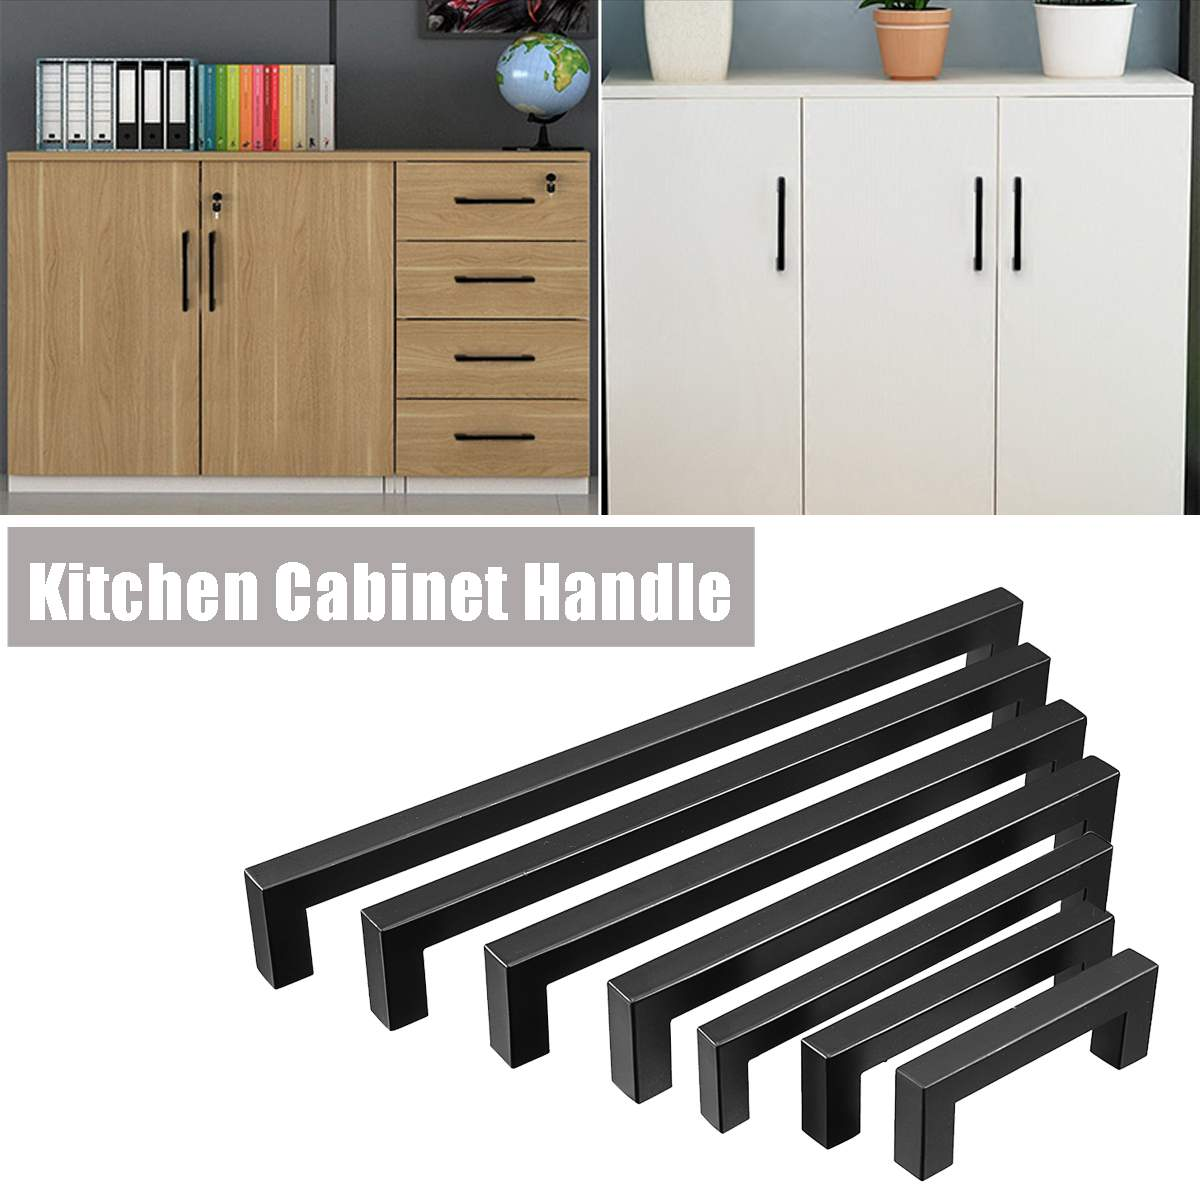 Us 1 91 54 Off 1pcs Black Kitchen Cabinet Handles Modern Door Knobs Stainless Steel Square Closet Drawer Cupboard Pulls Bathroom Cabinet 8sizes In